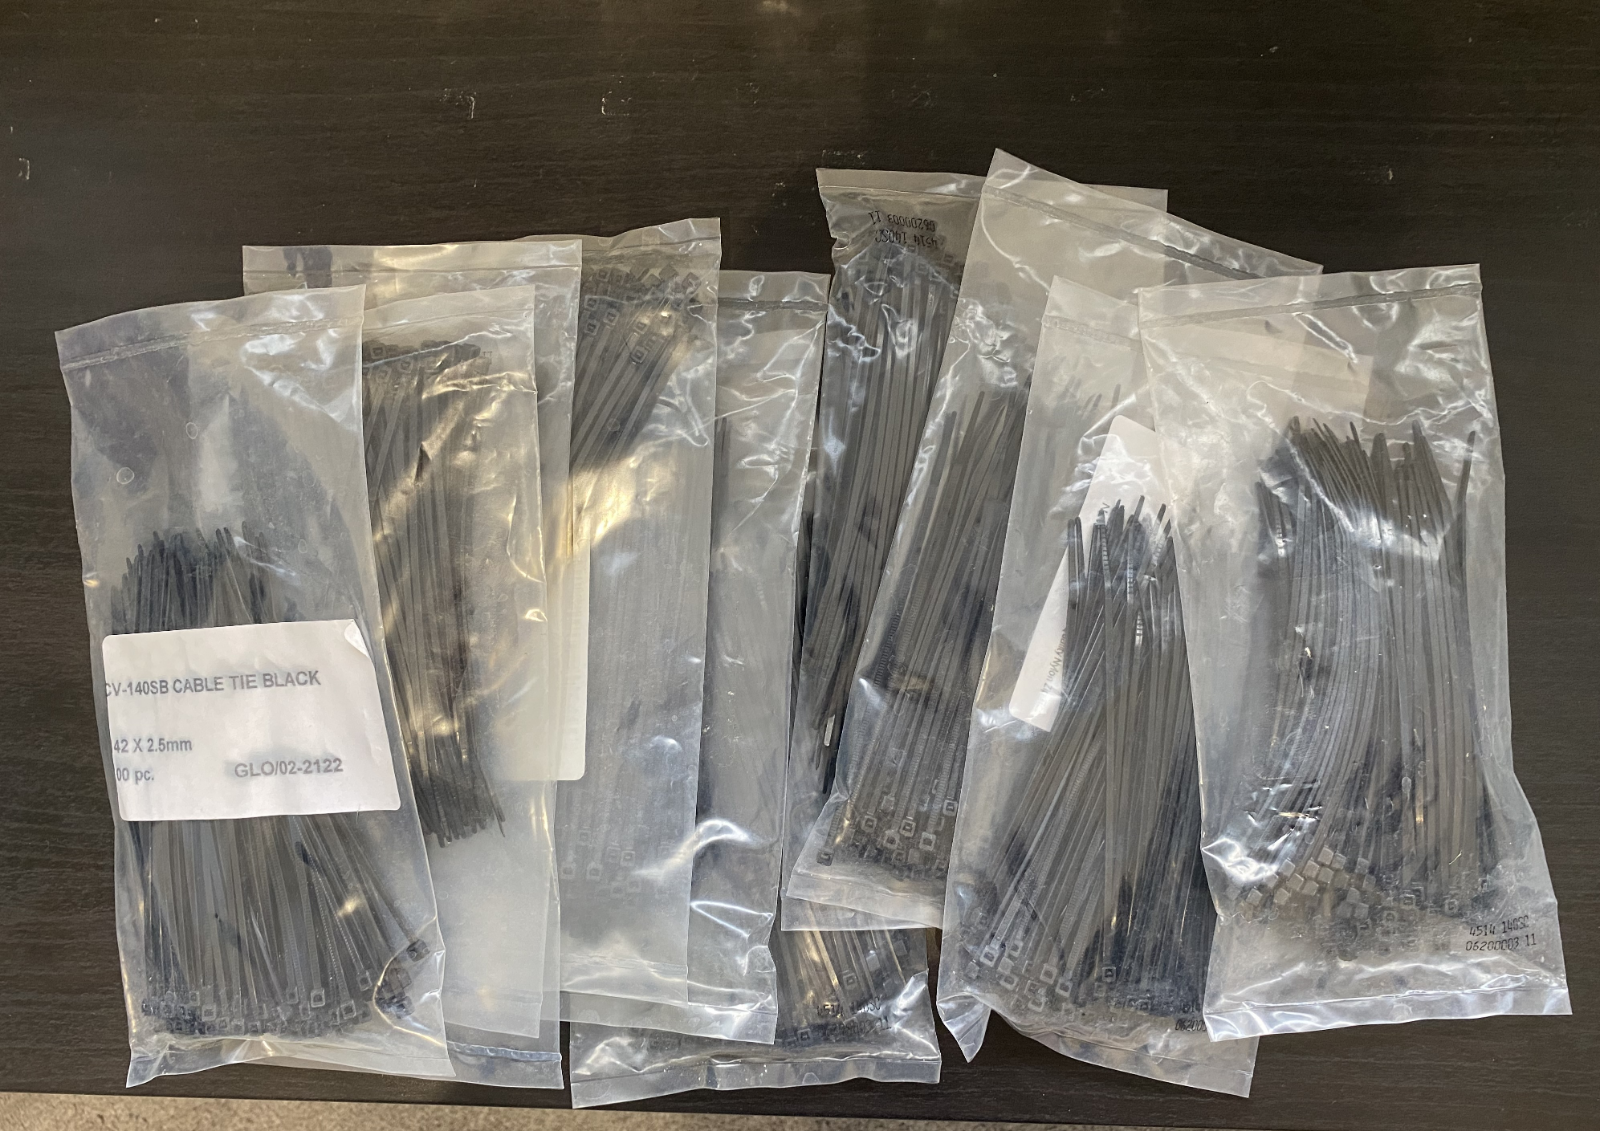 10 X 100 Pack of Black Cable Ties - 142mm x 2.5mm - 5.5